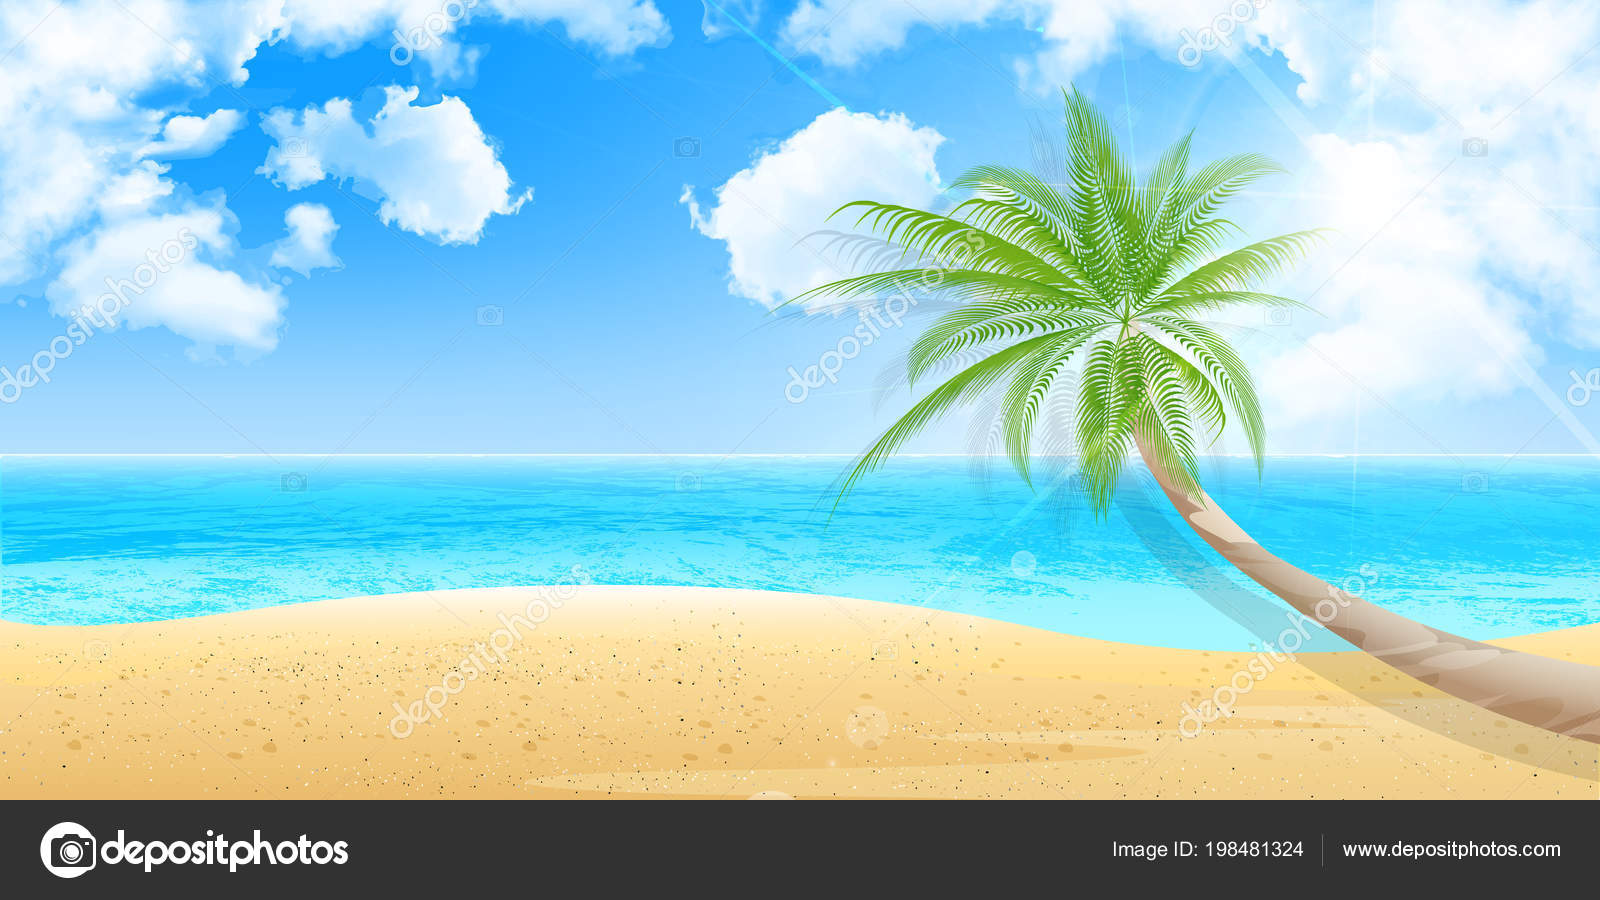 palm summer scenery background — stock vector © jboy24 #198481324